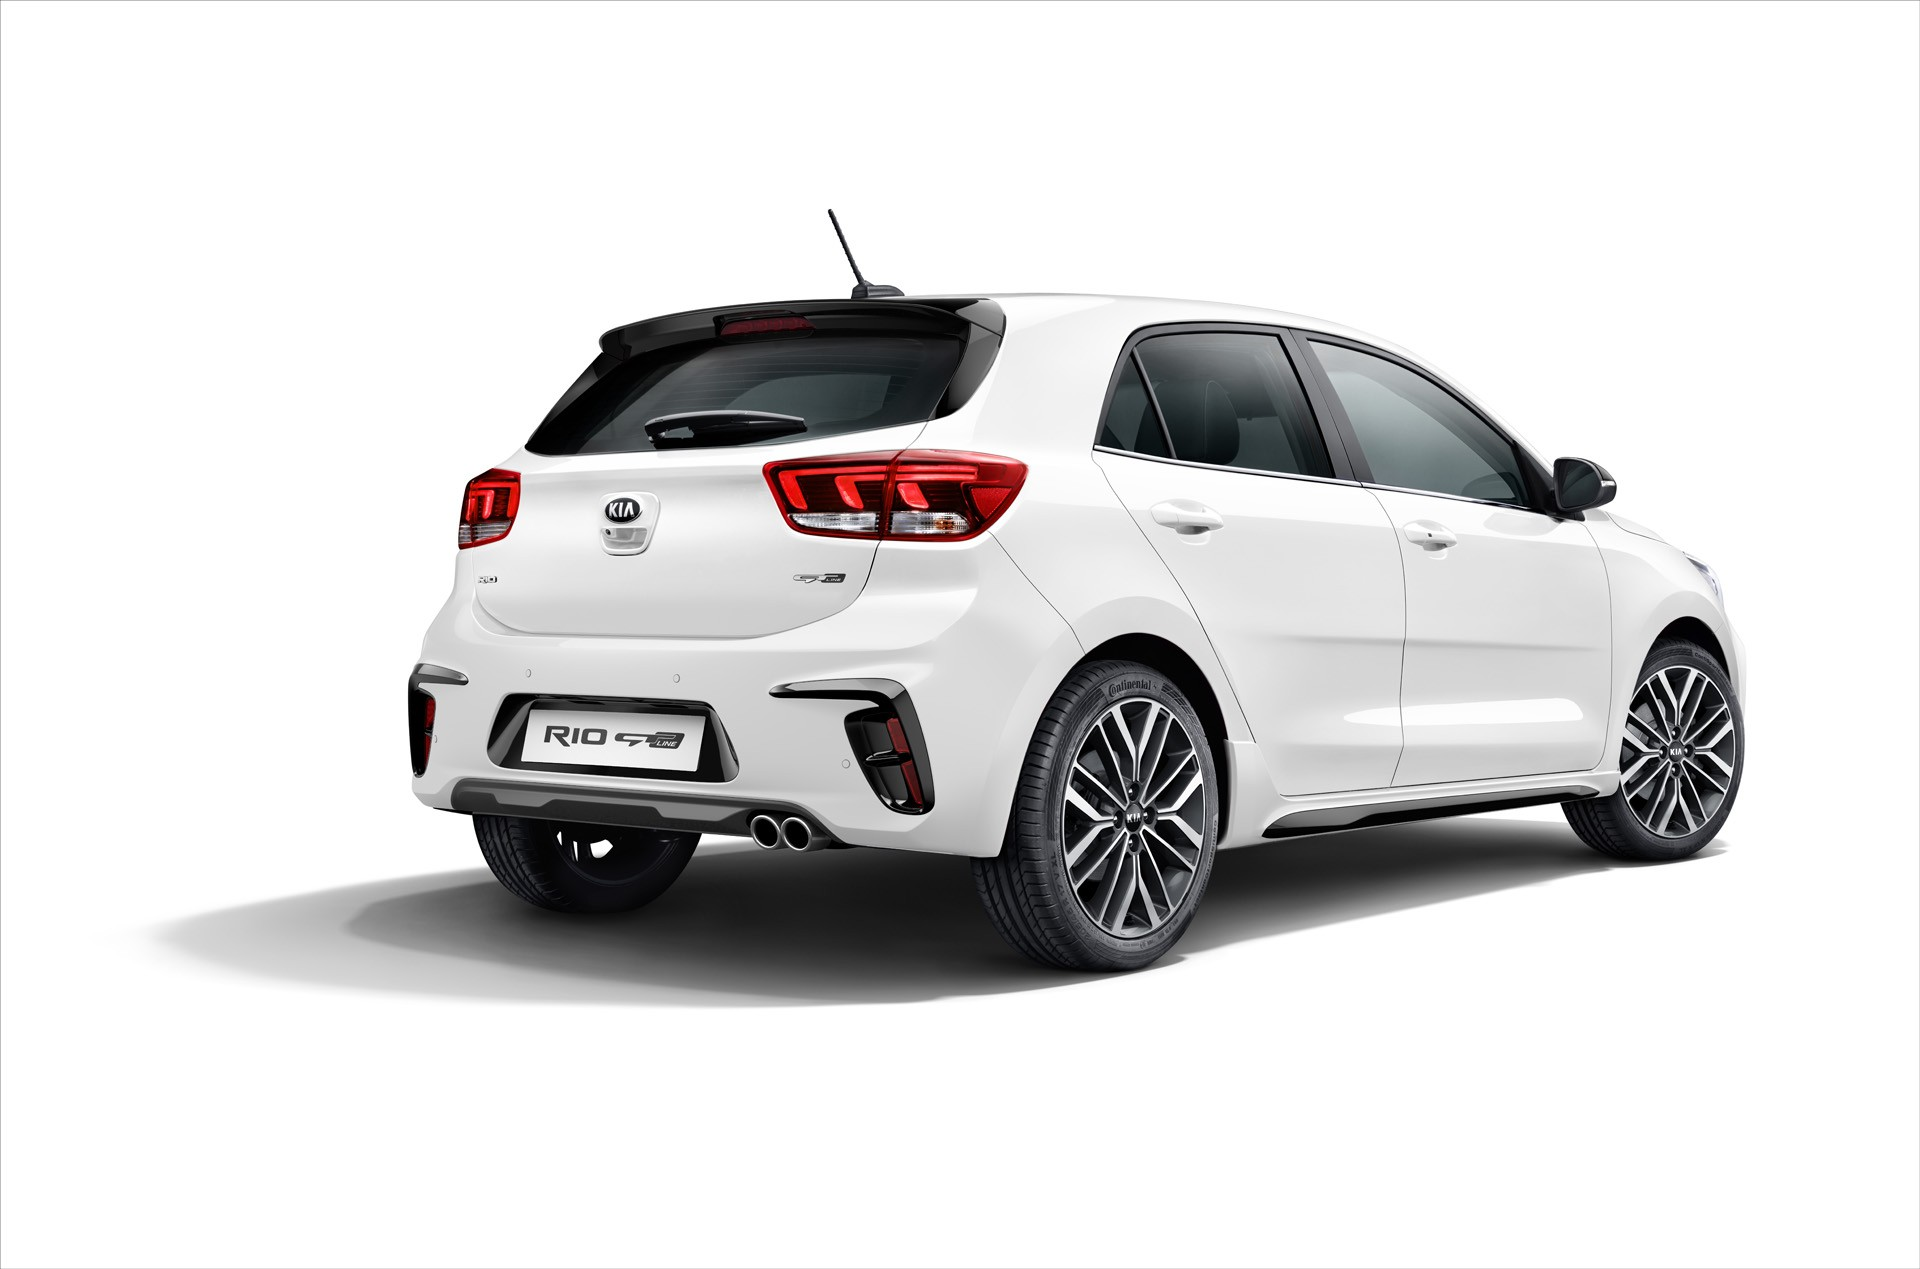 2018 kia rio gt line looks like a pocket sized hot hatchback but isn 39 t one autoevolution. Black Bedroom Furniture Sets. Home Design Ideas